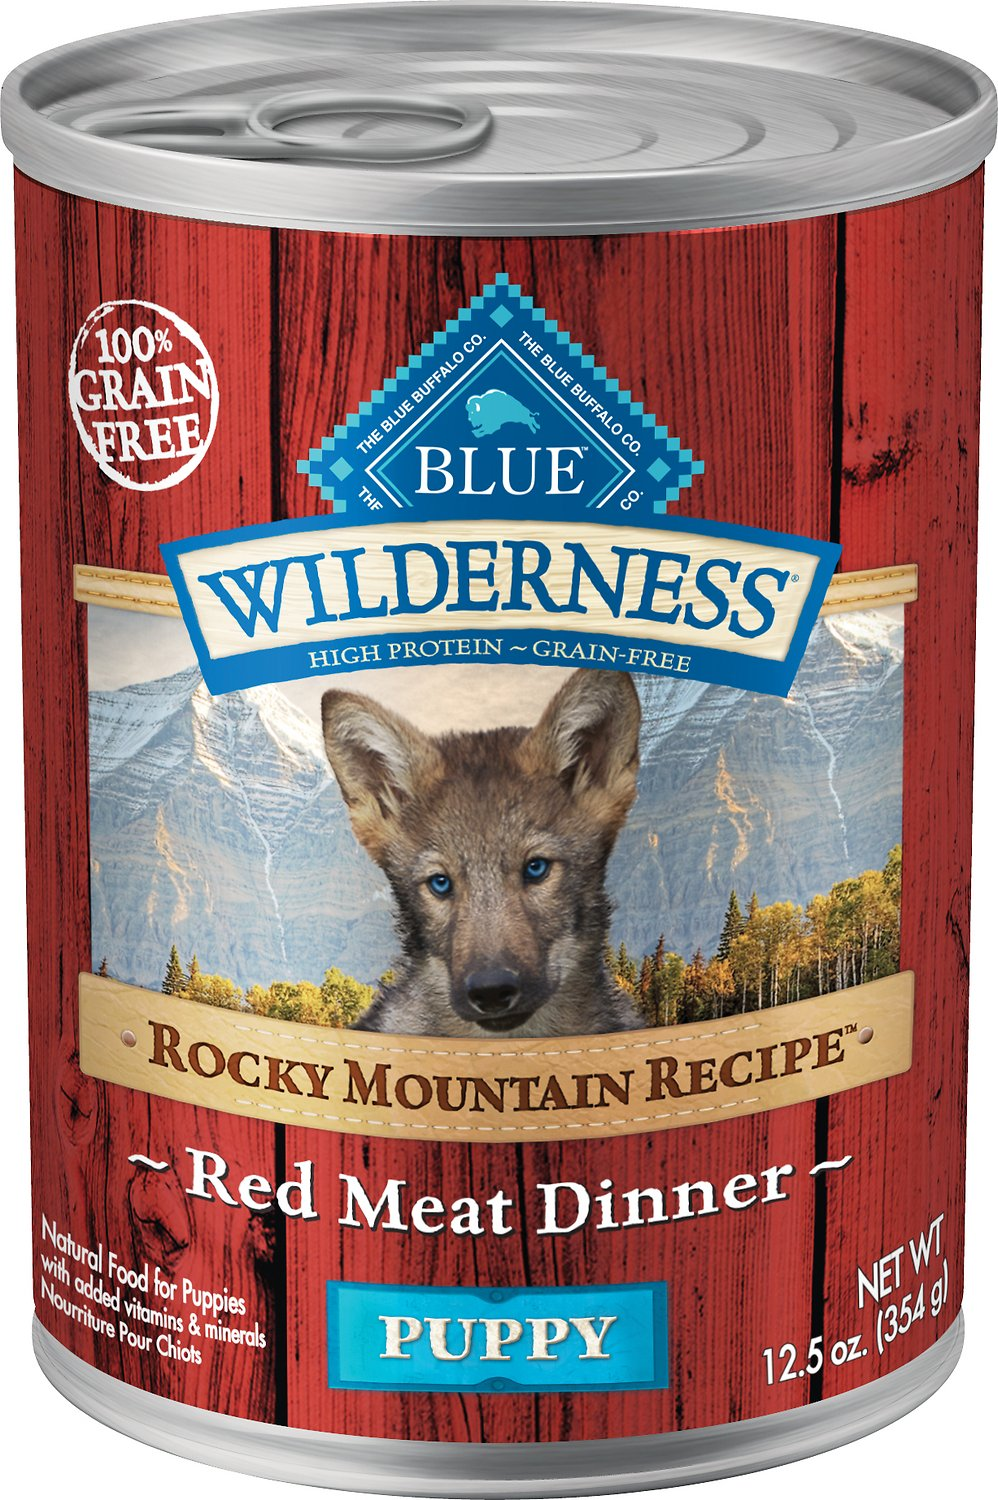 Blue Buffalo Wilderness Rocky Mountain Recipe Red Meat Dinner Puppy Grain-Free Canned Dog Food, 12.5-oz